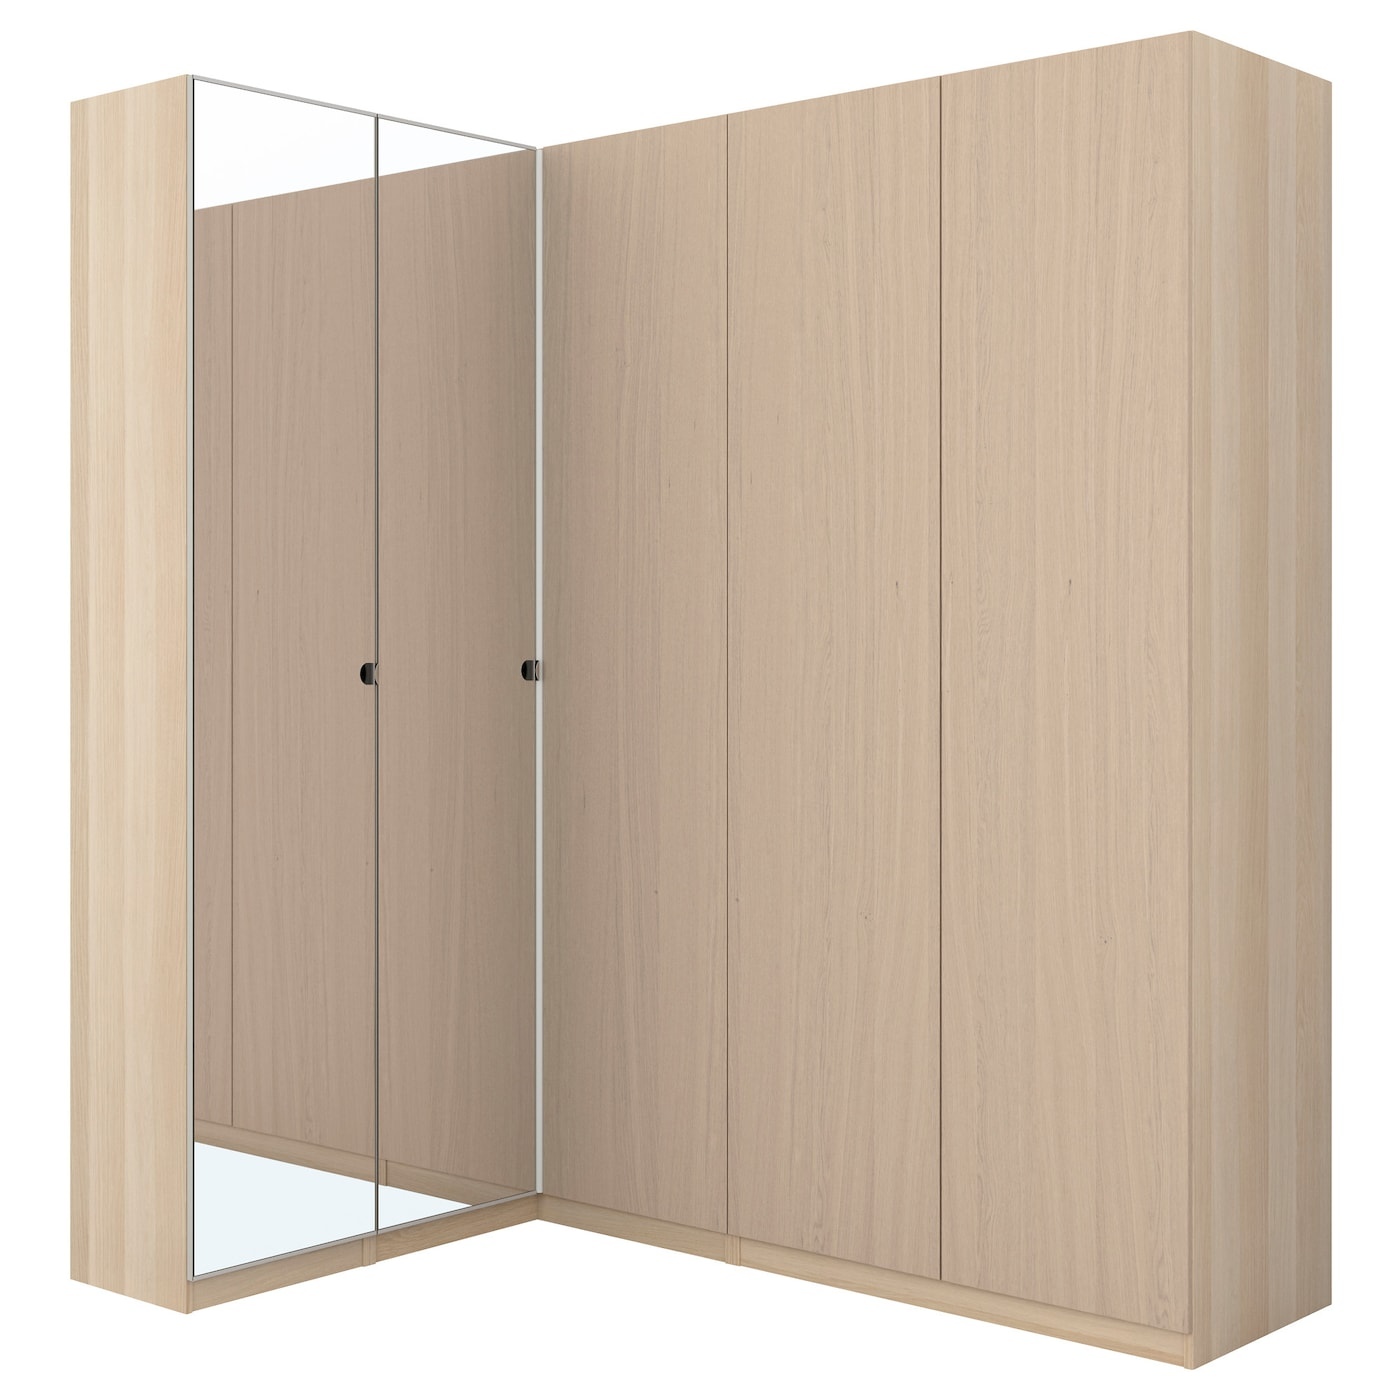 IKEA PAX corner wardrobe 10 year guarantee. Read about the terms in the guarantee brochure.